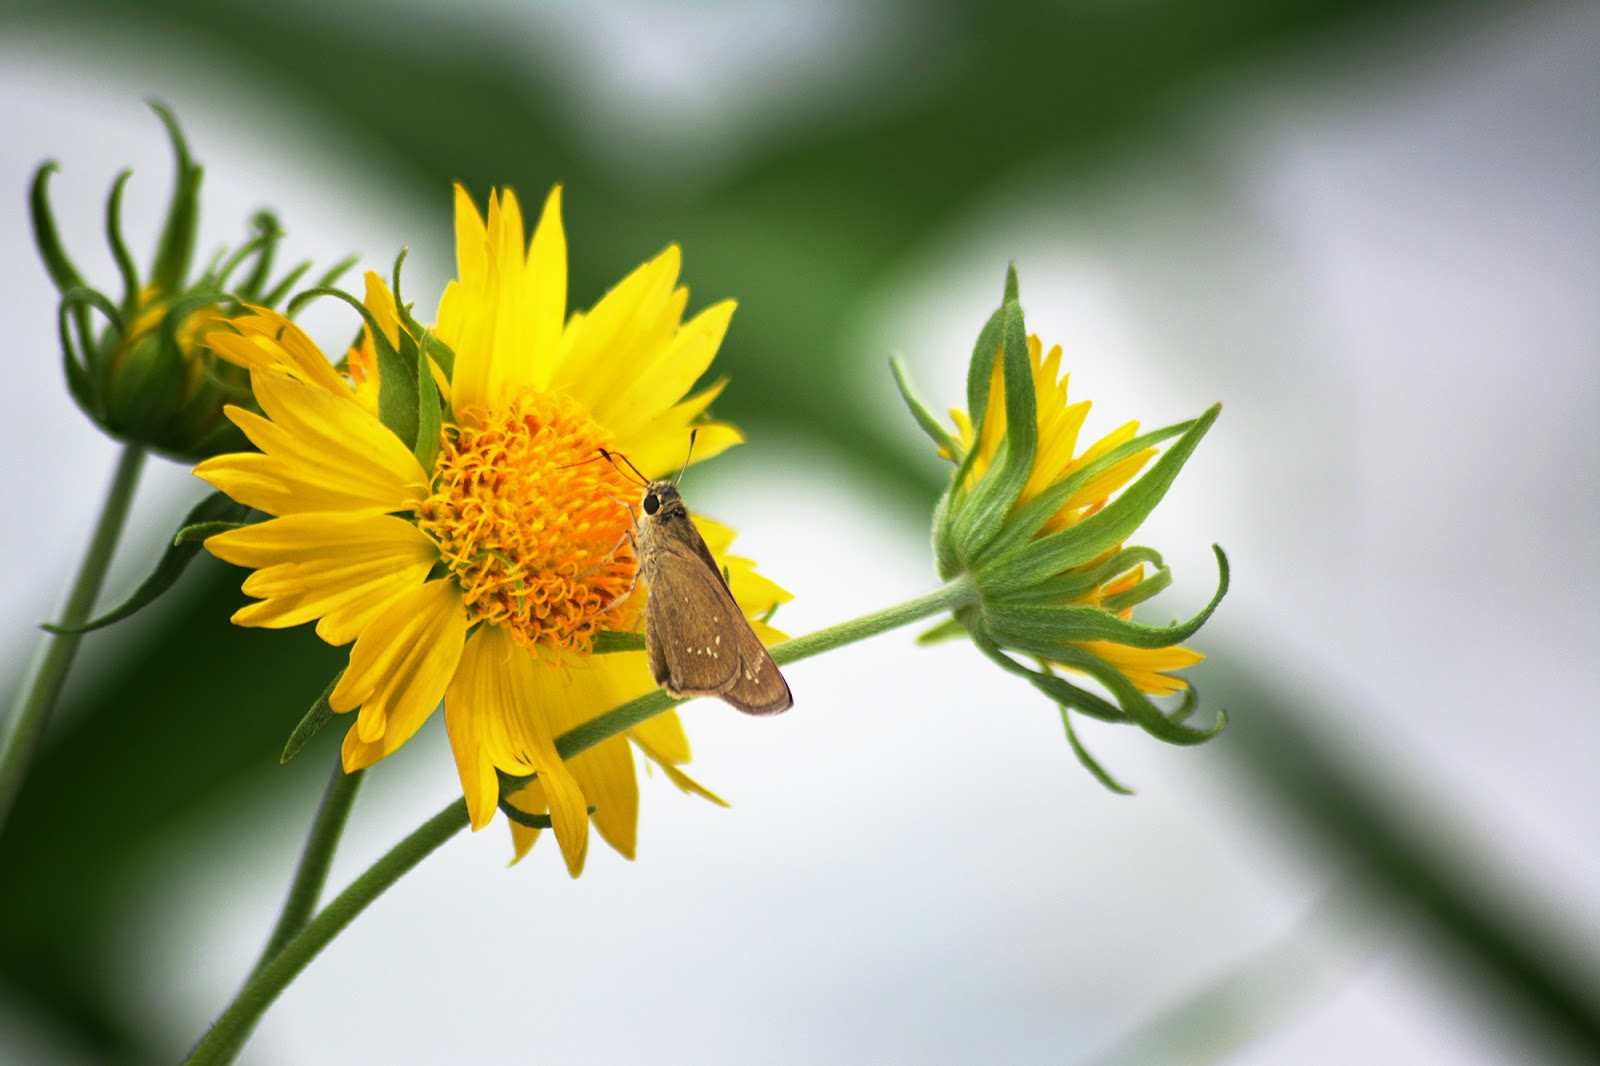 Live your hobbies photography the butterfly on the the yellow flowers mightylinksfo